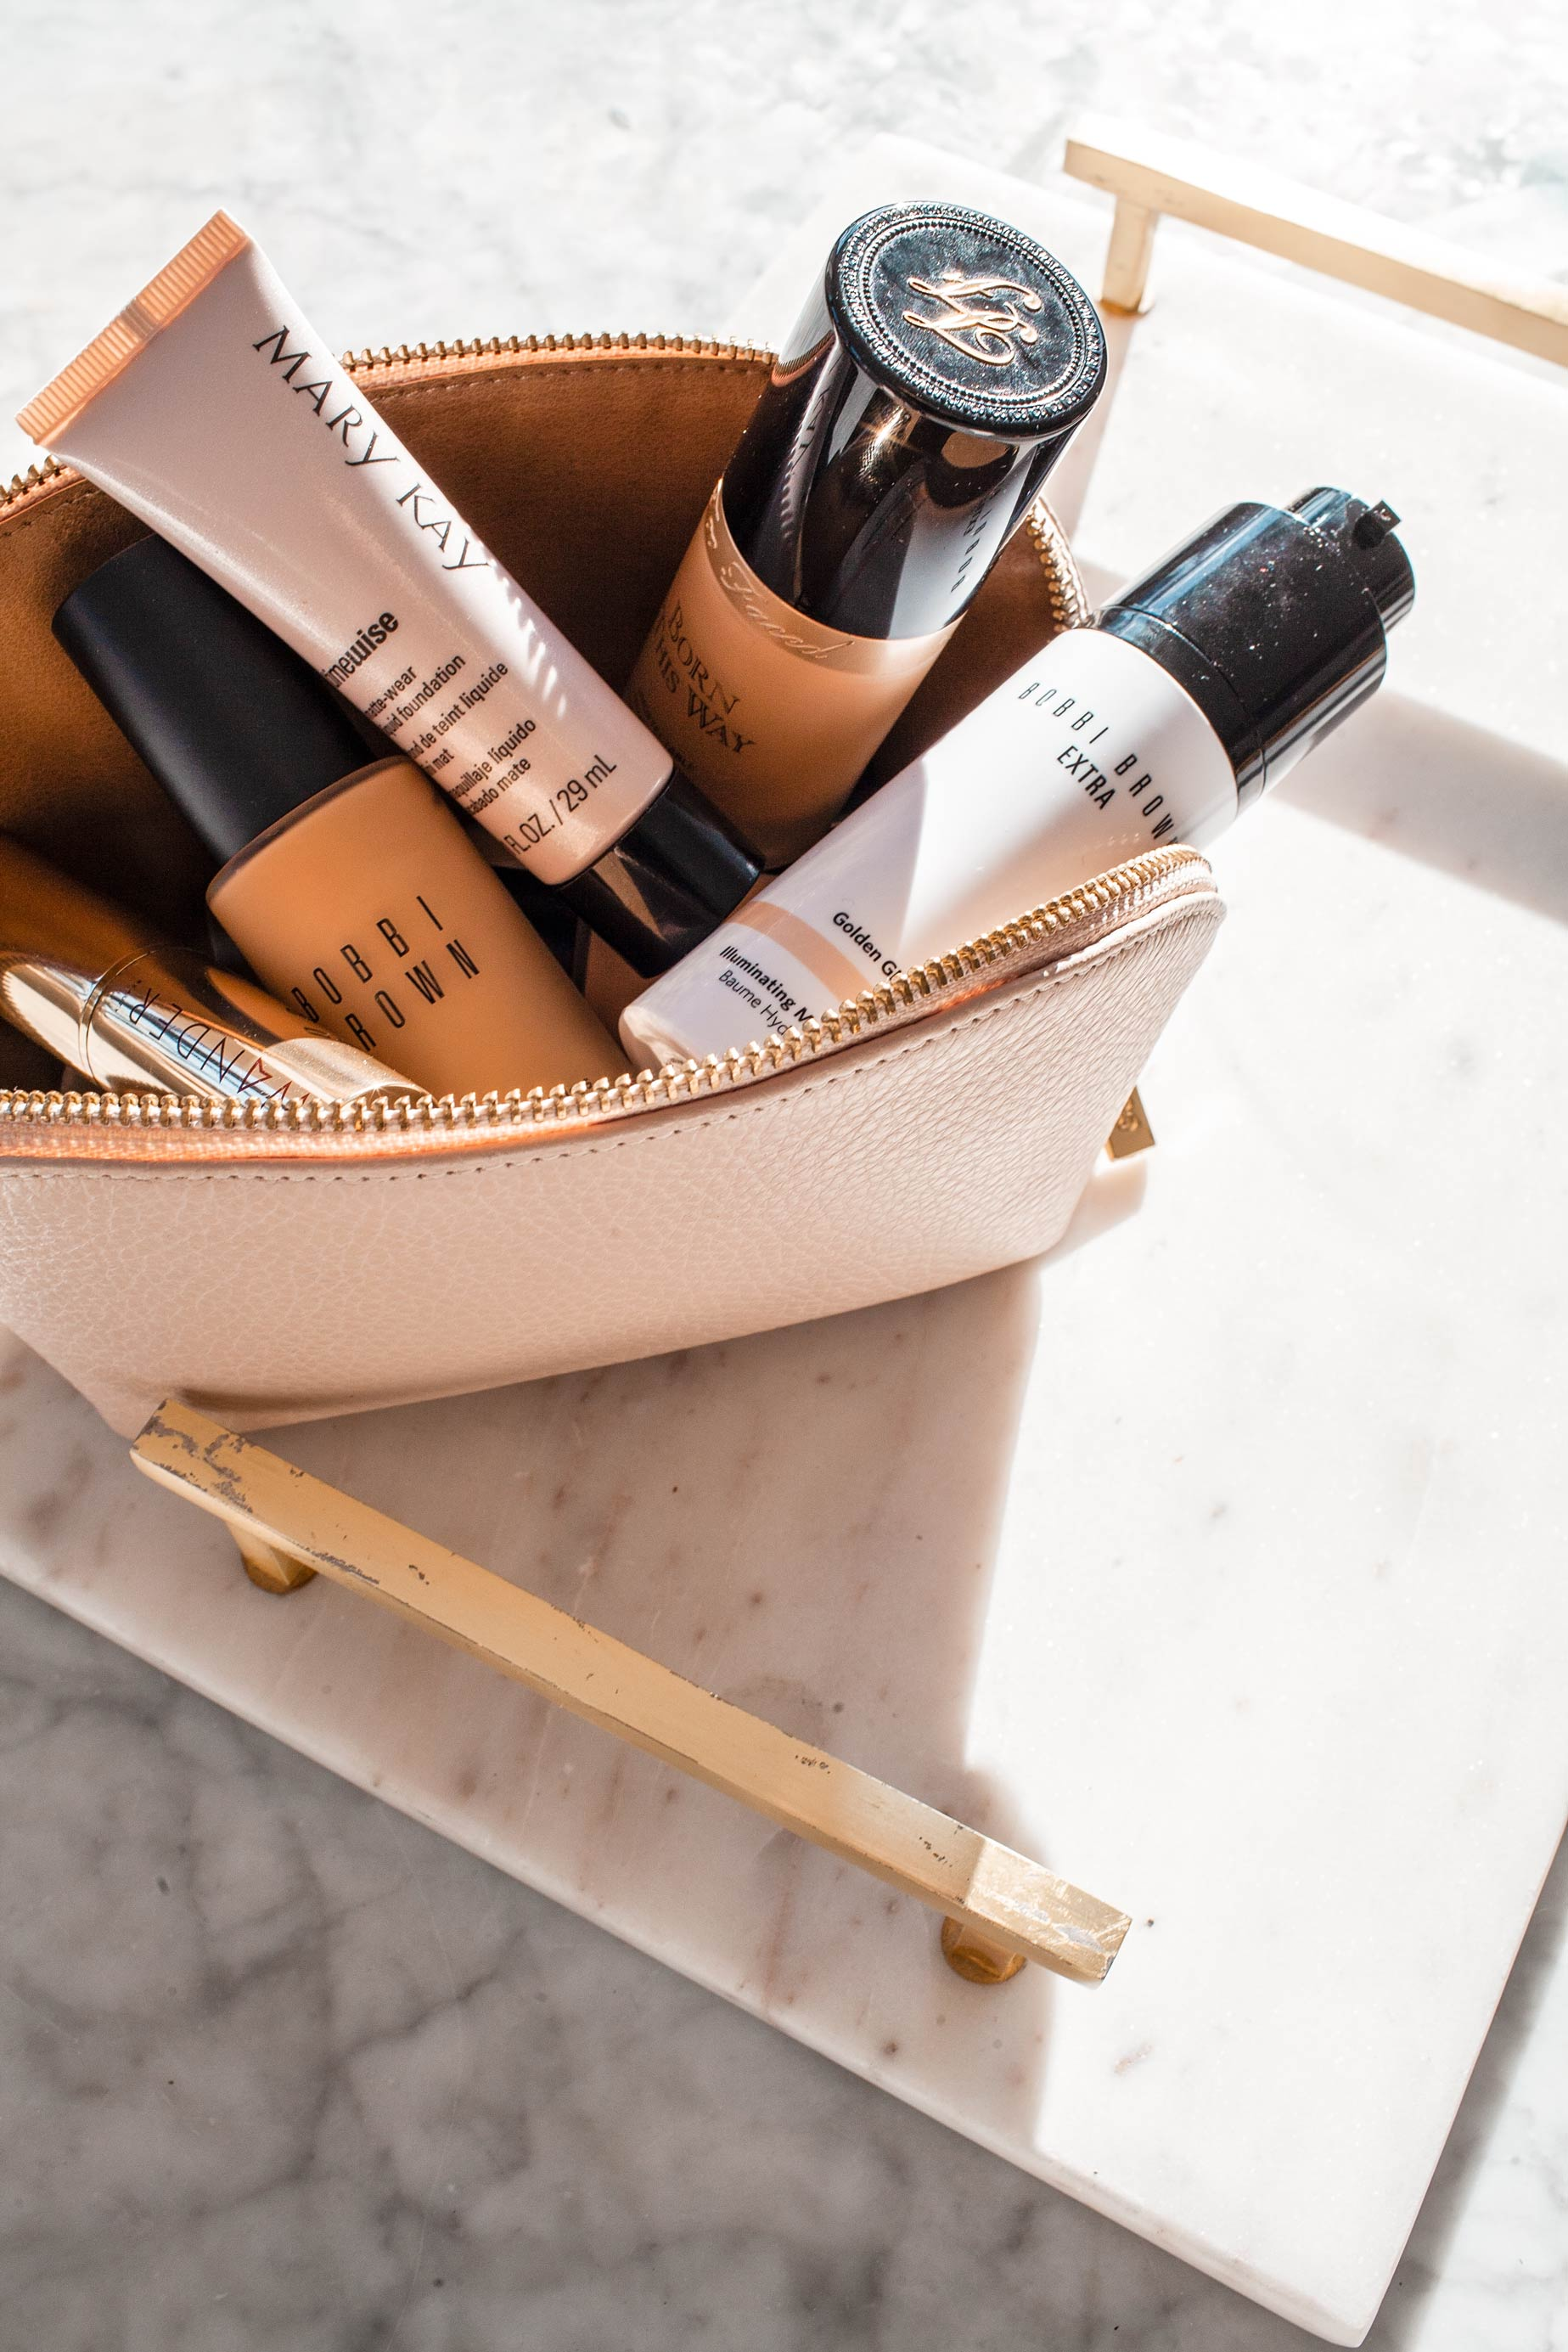 Mary Kay Mineral Makeup Roll Bag